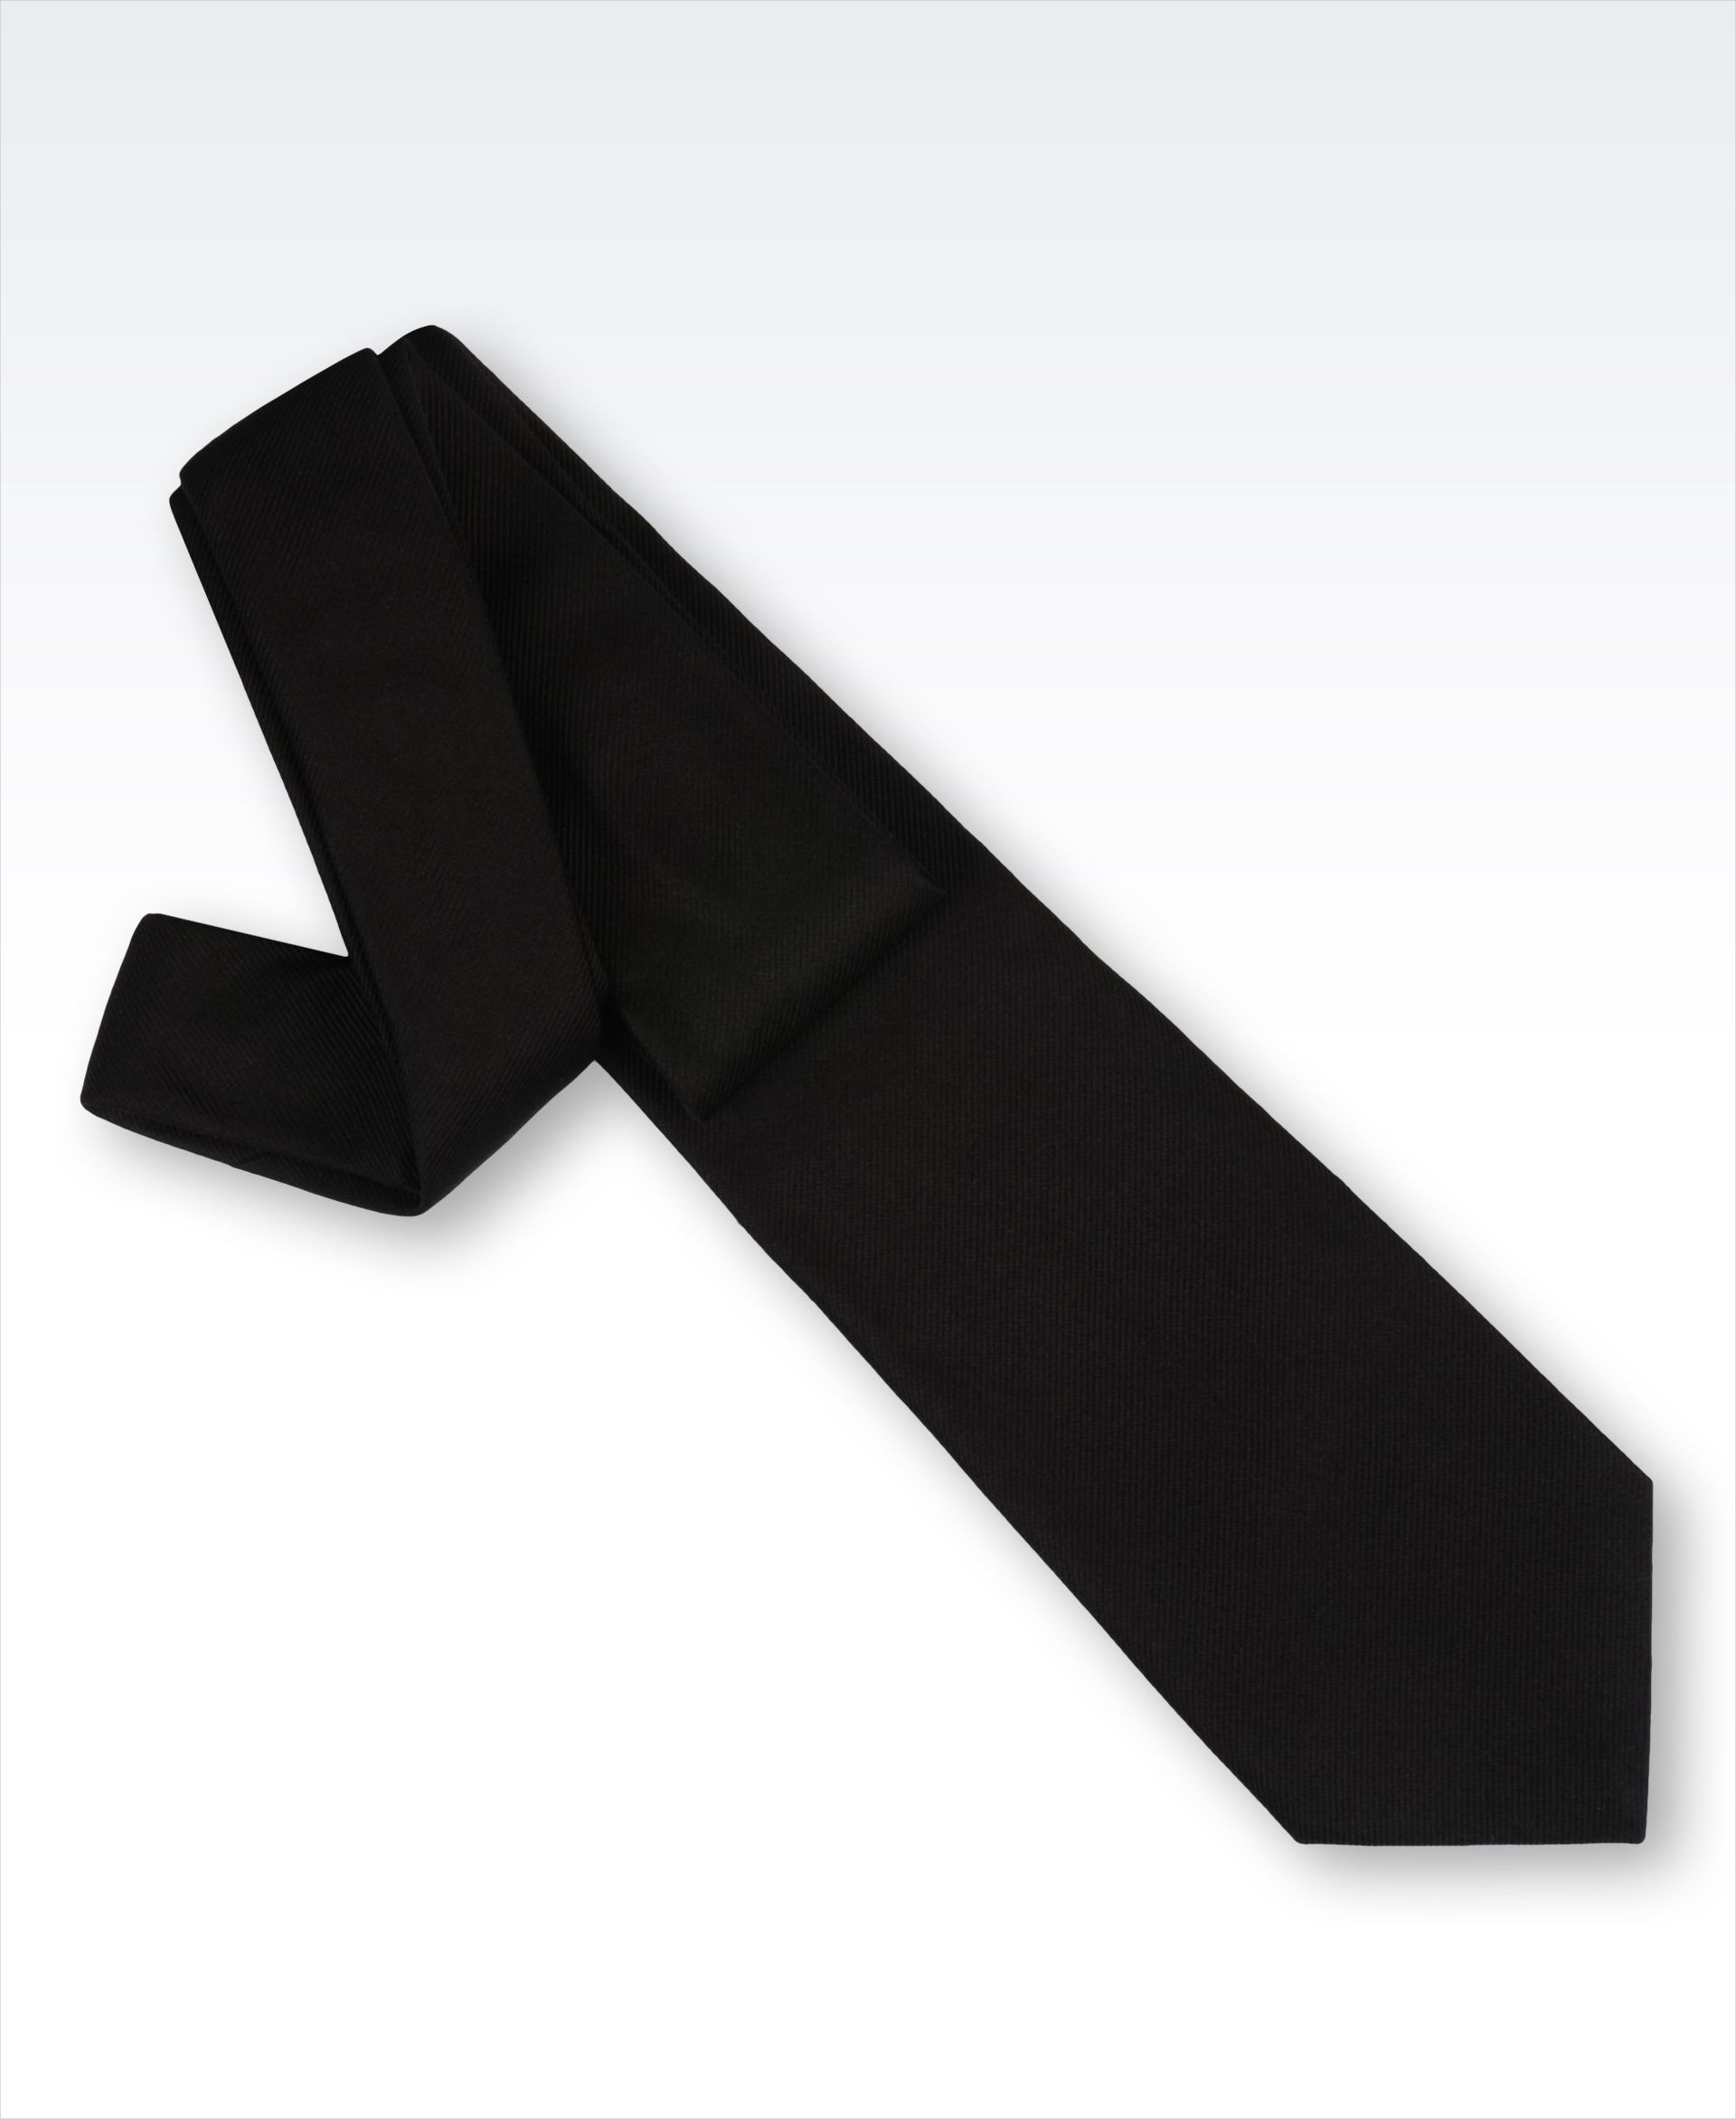 designer black silk tie for men